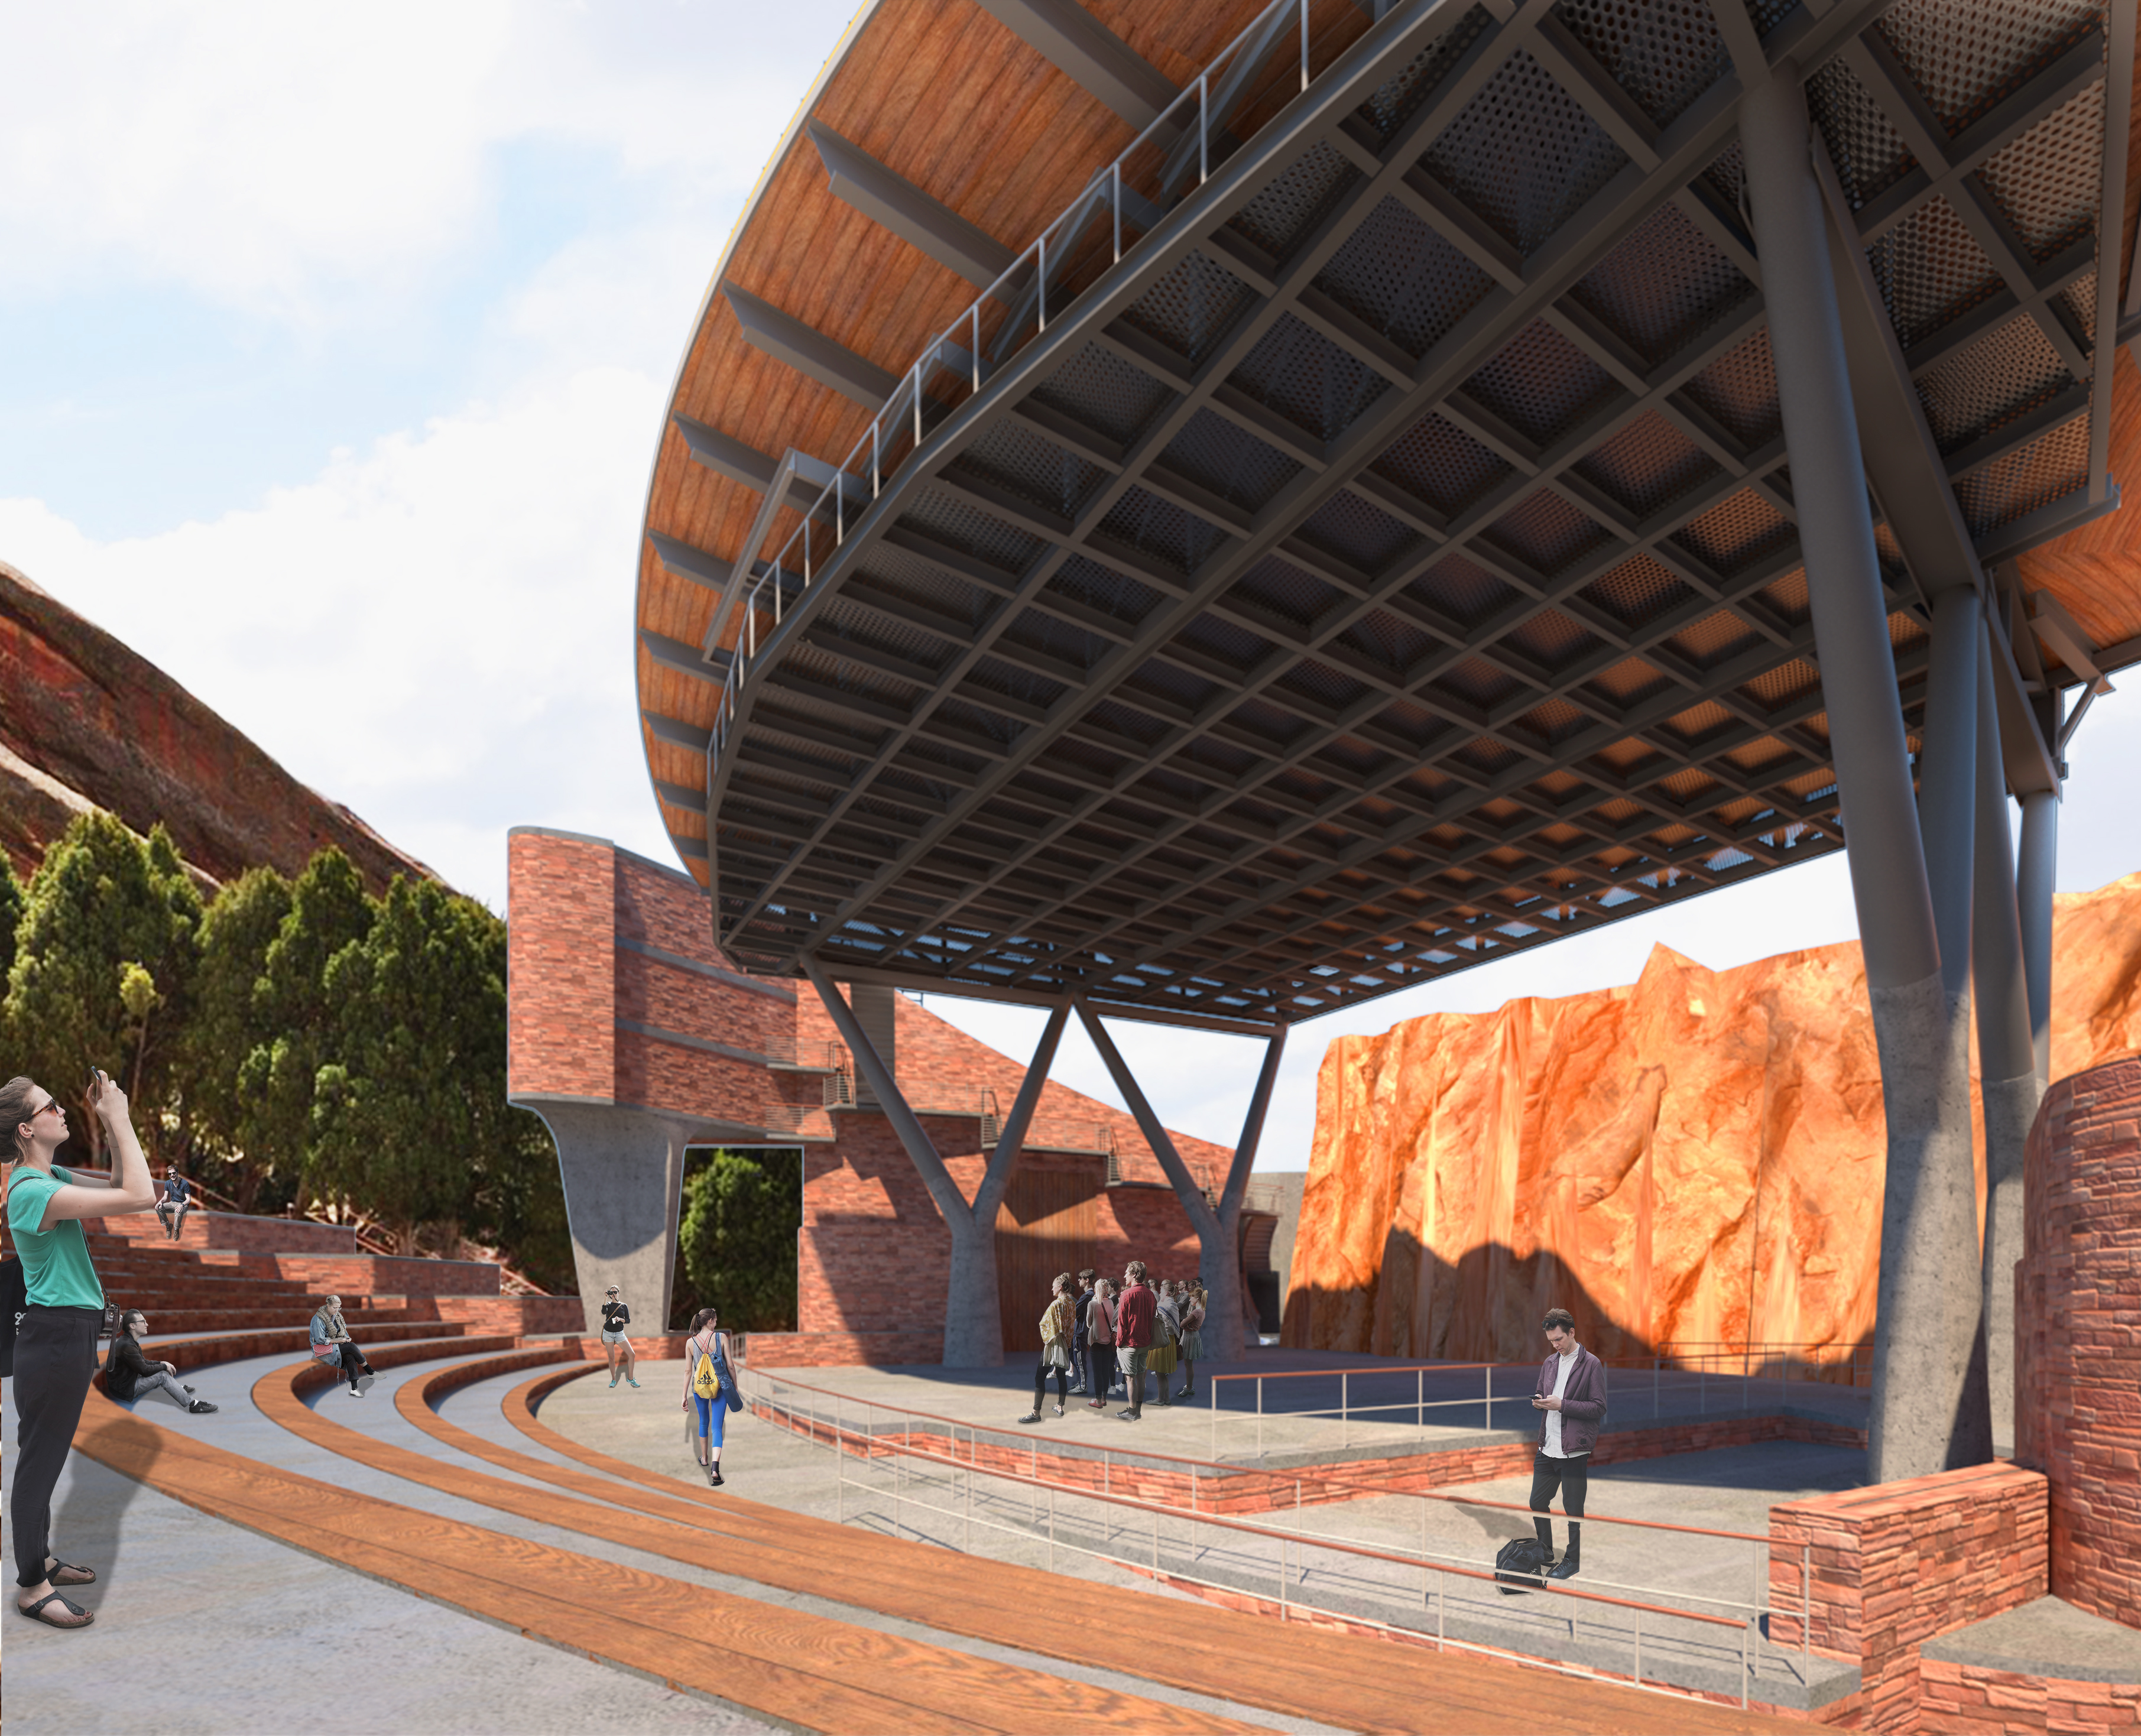 Rendering of Red Rocks Amphitheatre's new stage roof from the audience's point of view. Image courtesy of SEH.